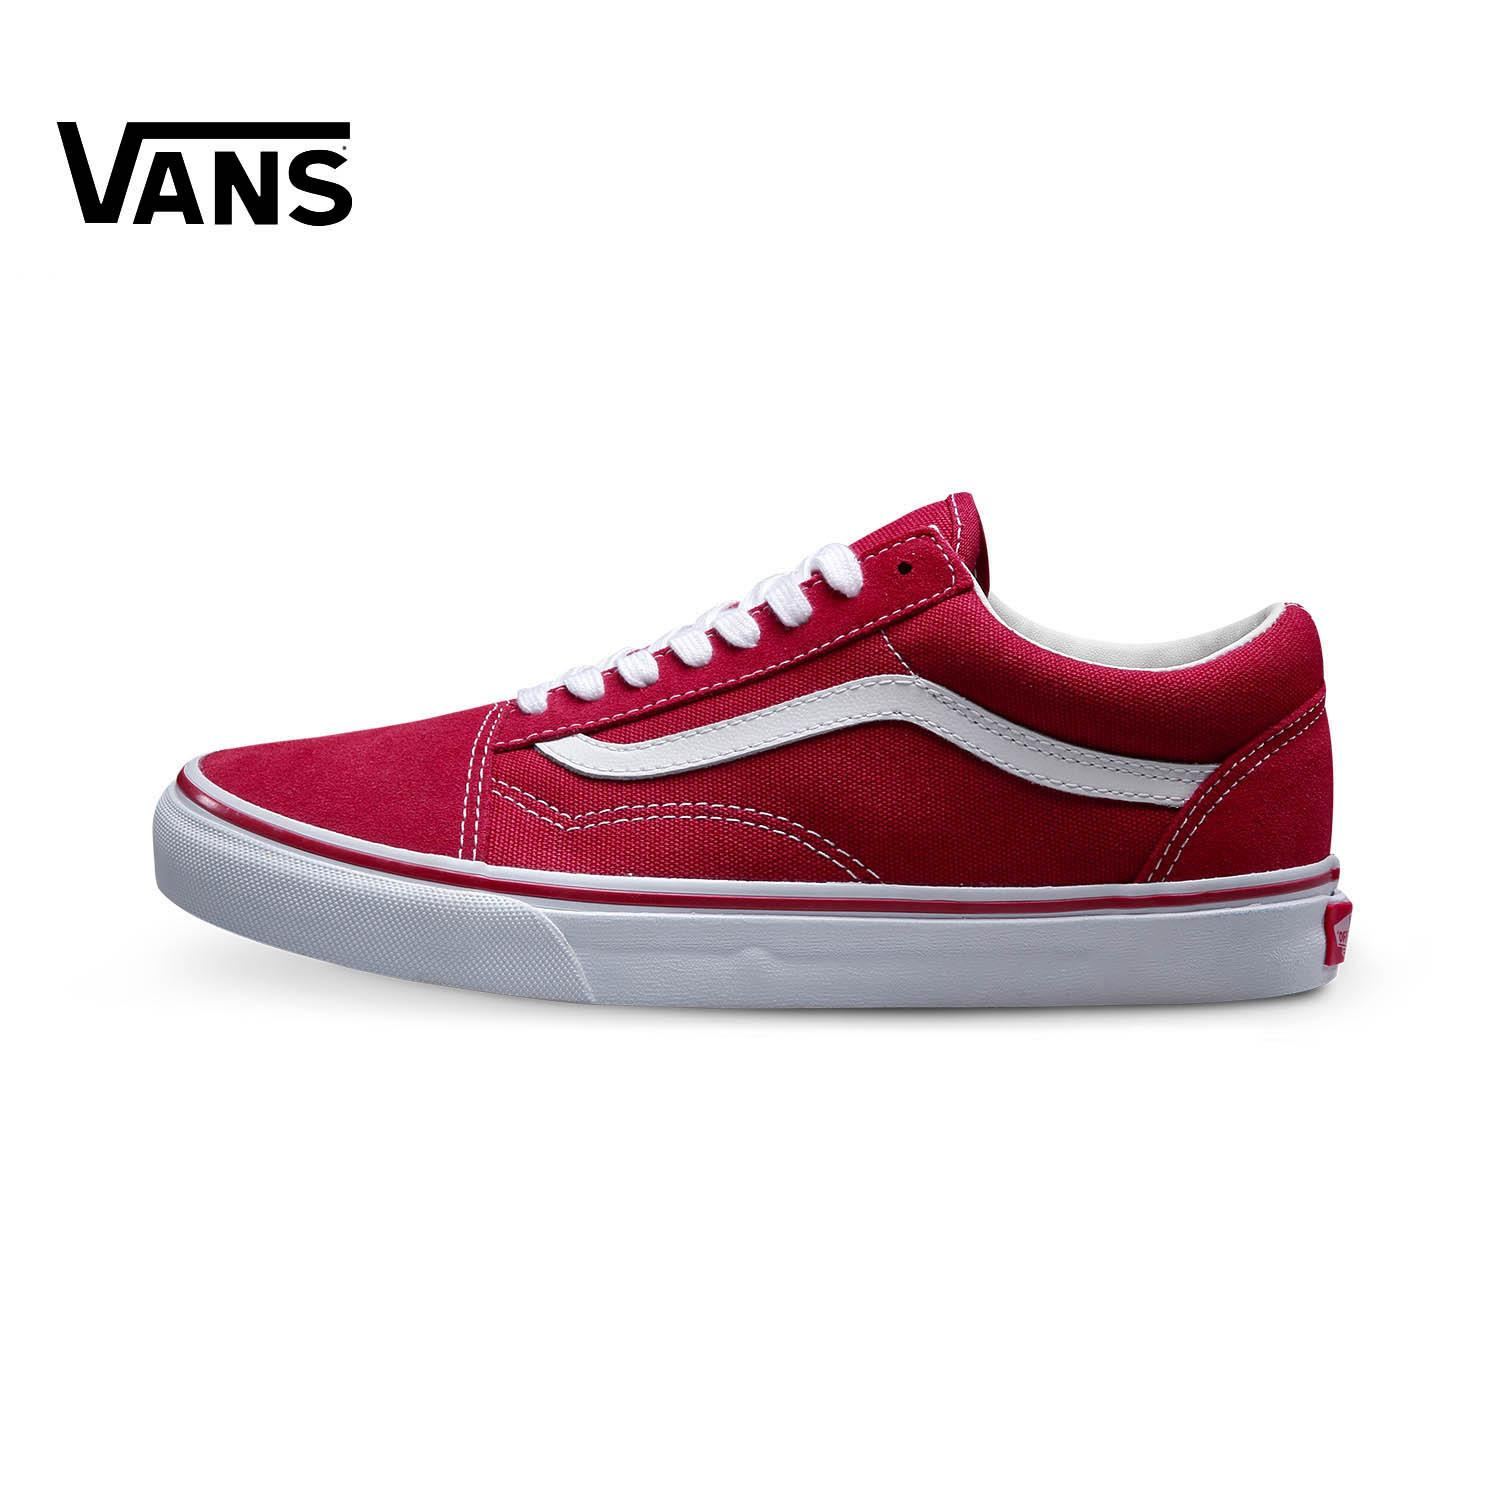 be485073d1 Product Vans Men s Shoes Old Skool Classic Style Low Top Skateboard Shoes  VN-0D3HY28 BLACK WHITE